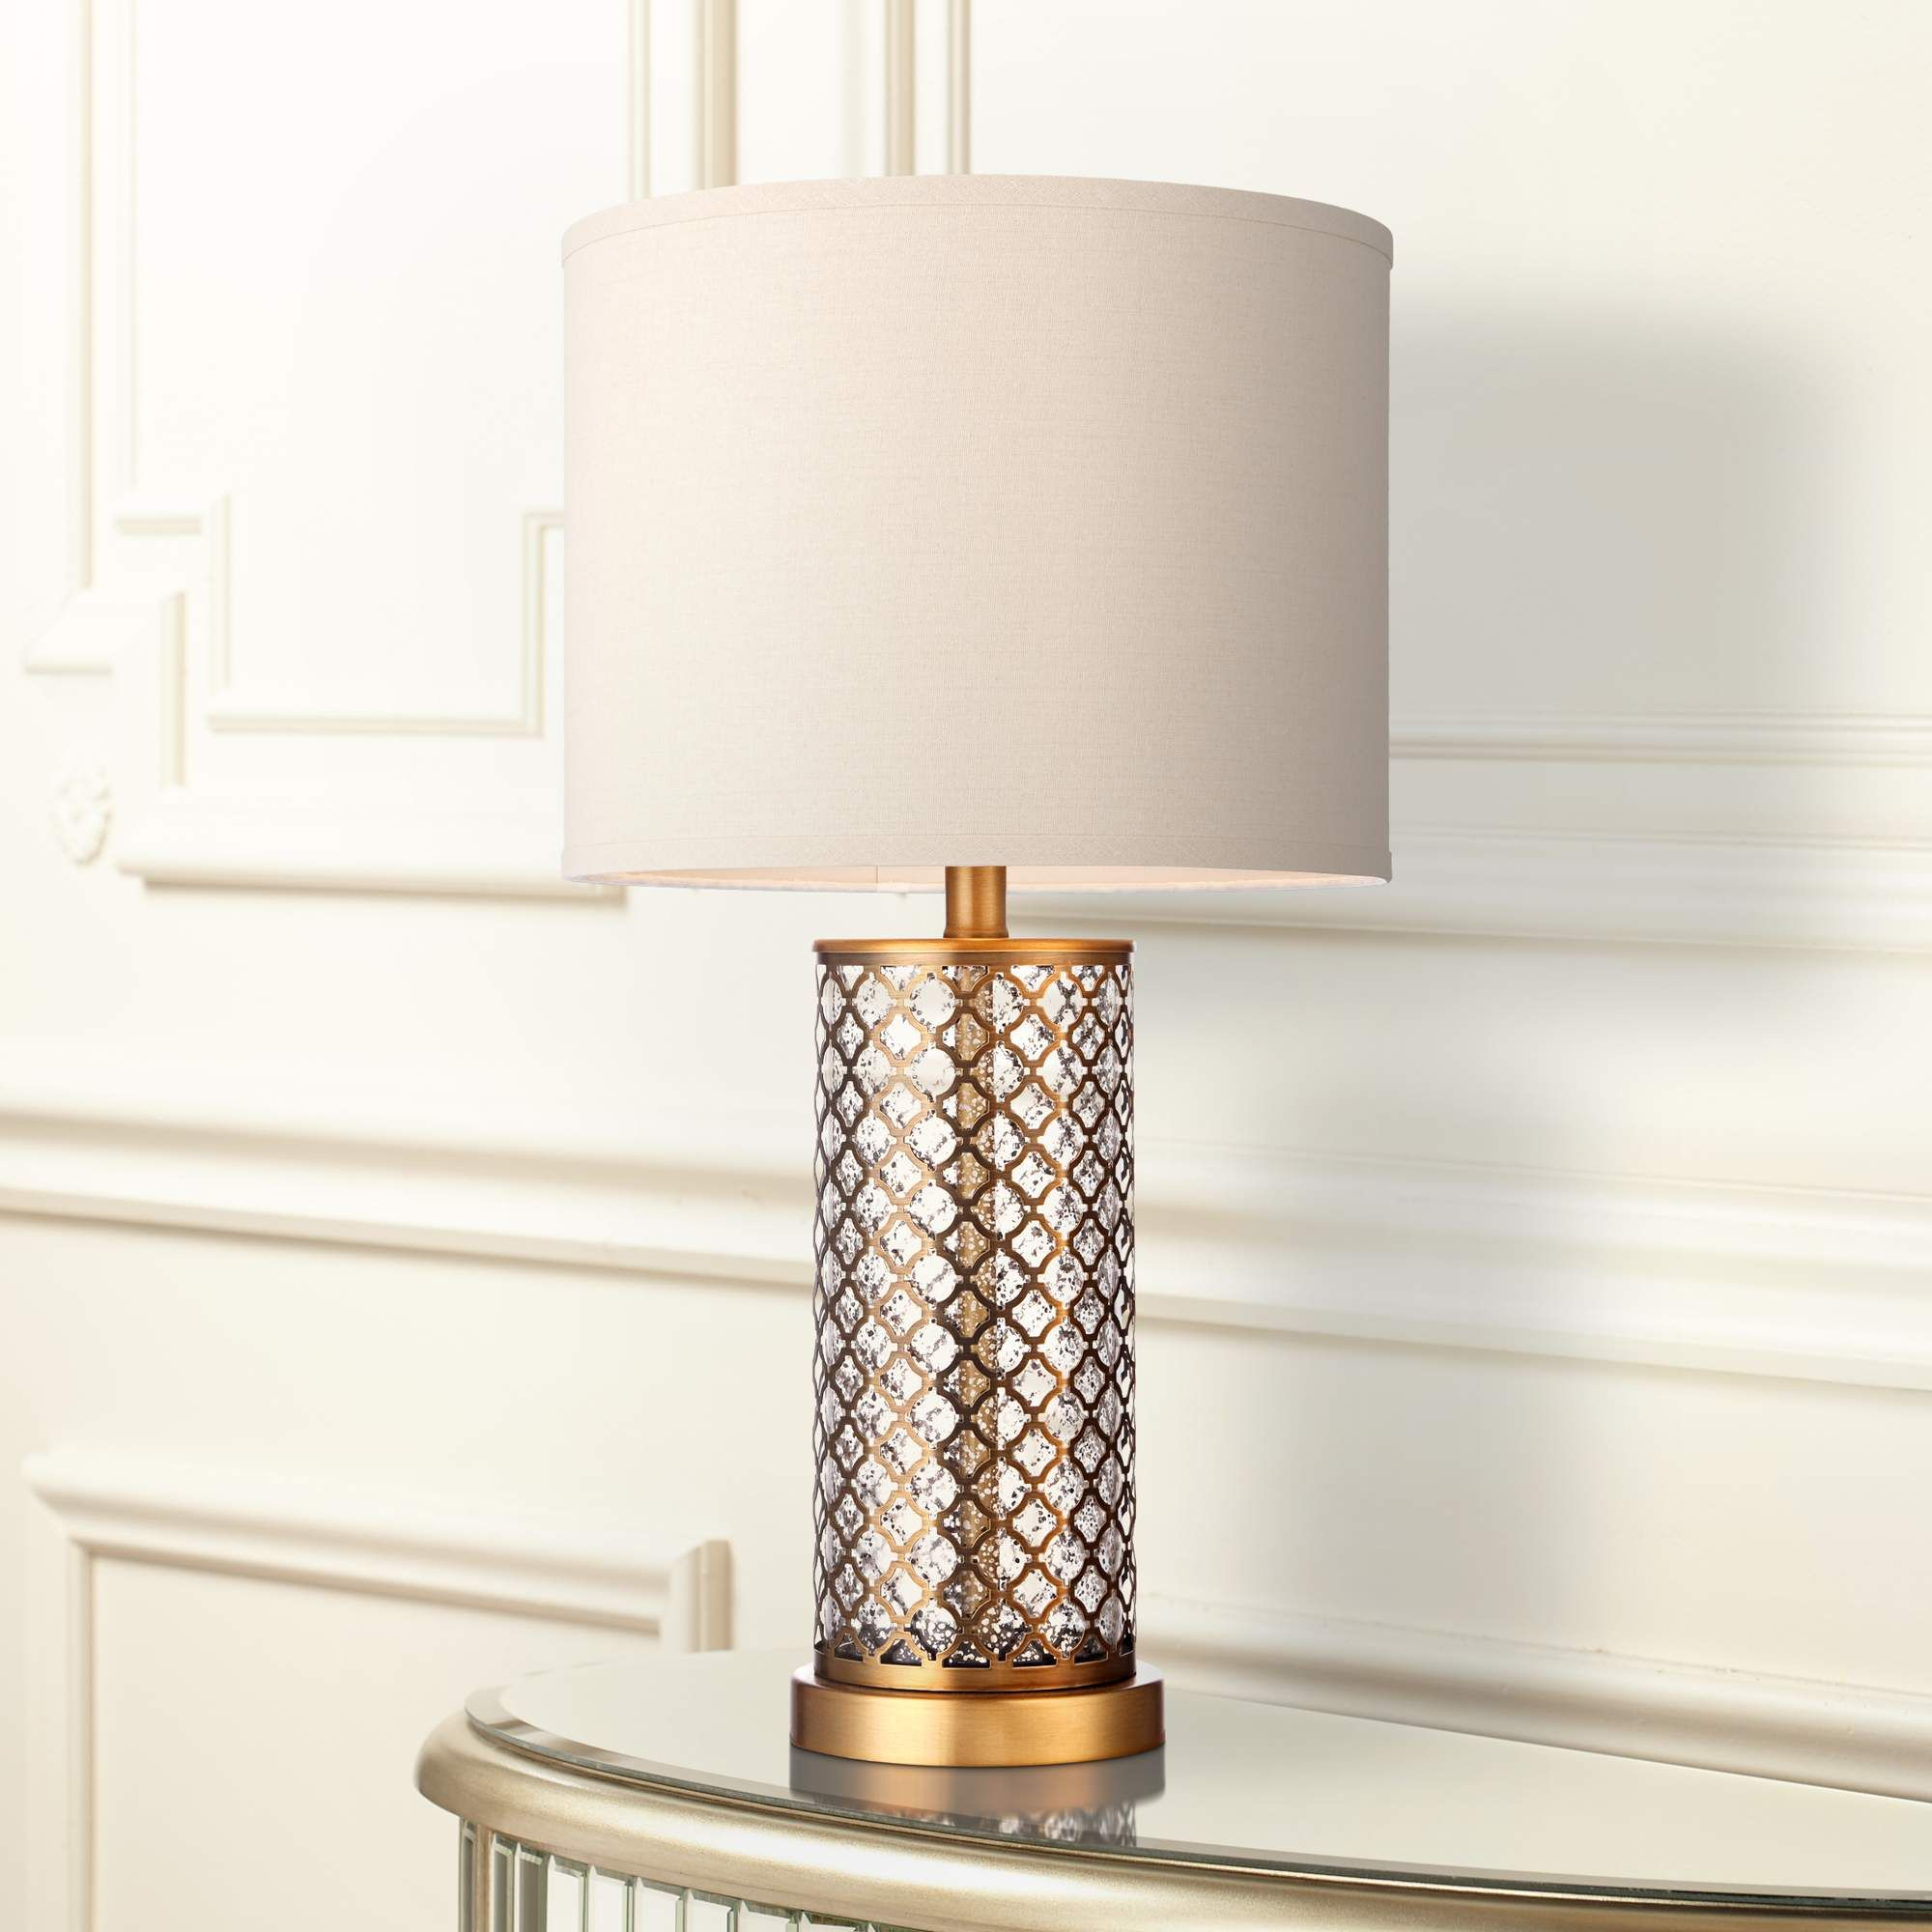 Alcazar Brass And Mercury Glass Table Lamp   #3P911 | Lamps Plus